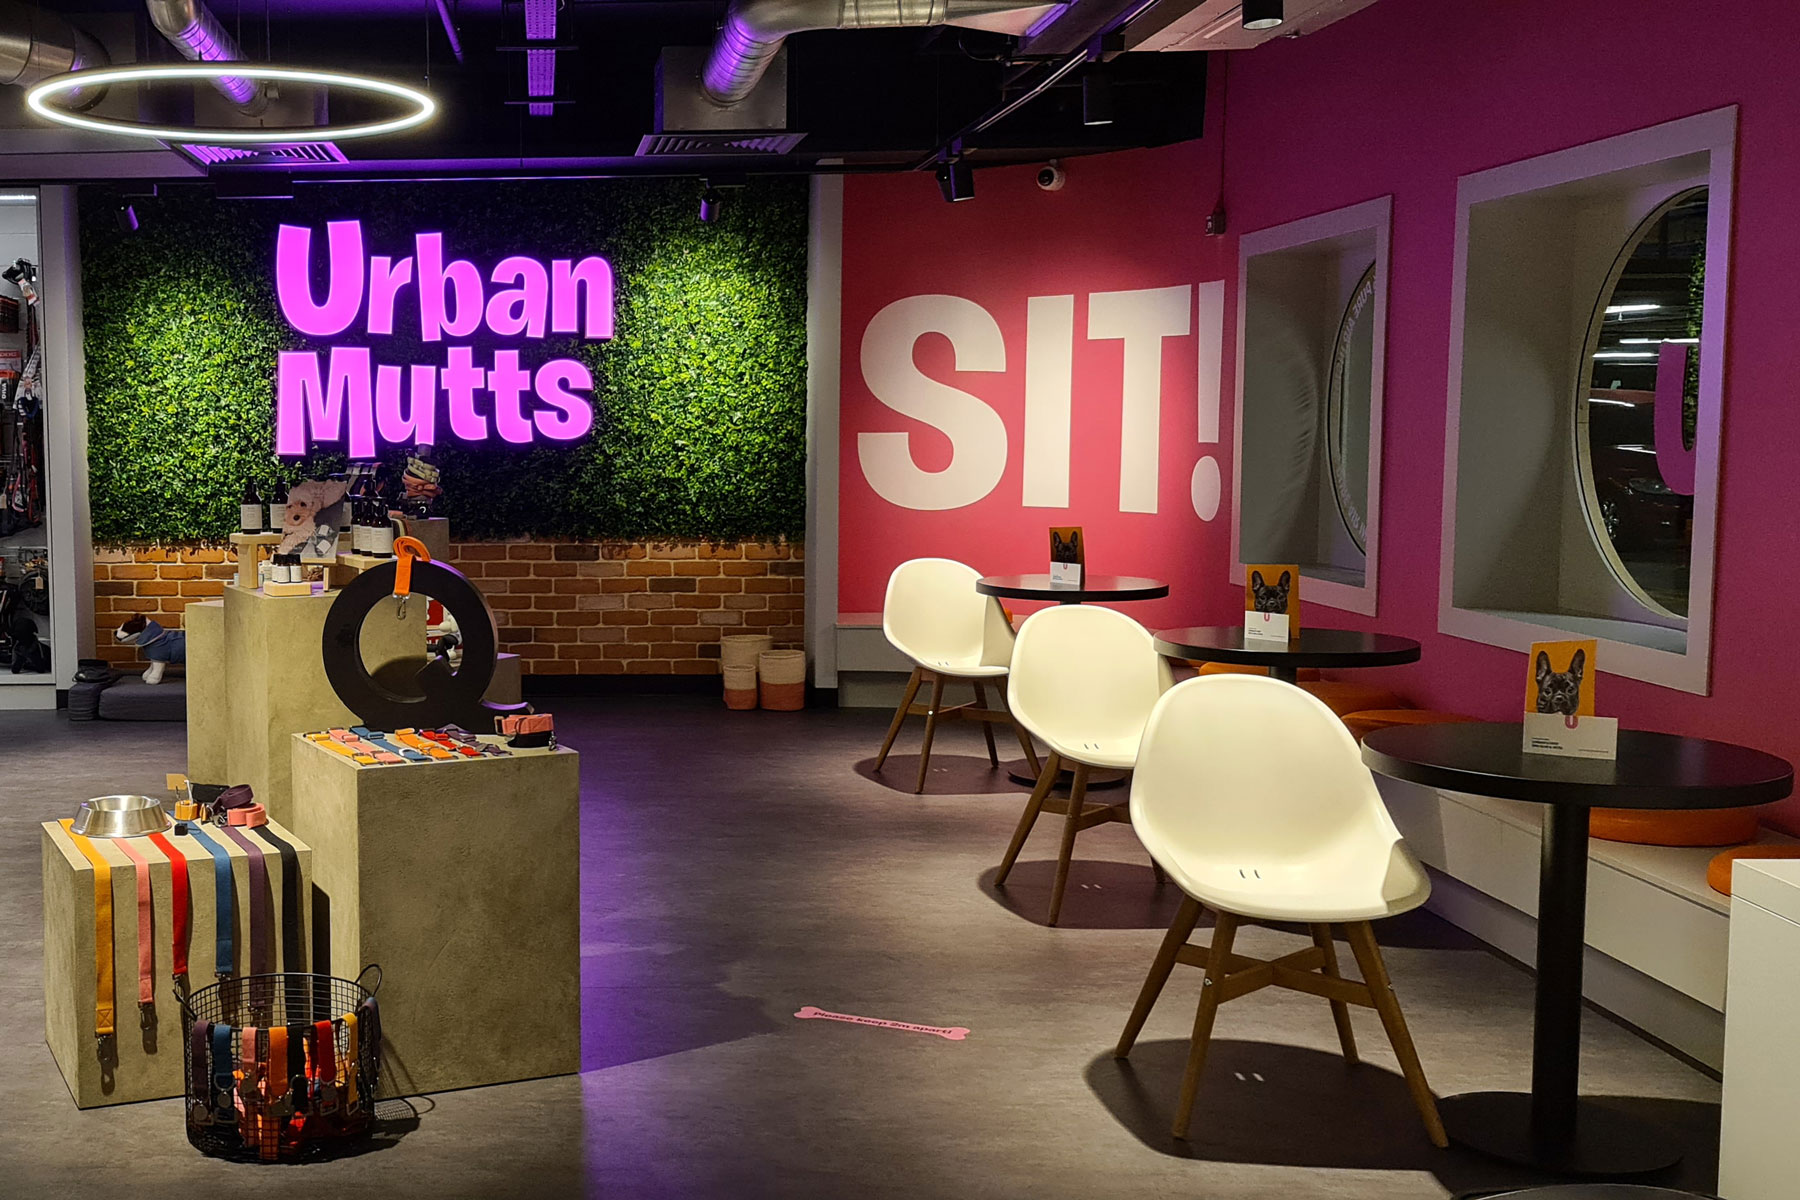 Interior shot of Urban Mutts hotel